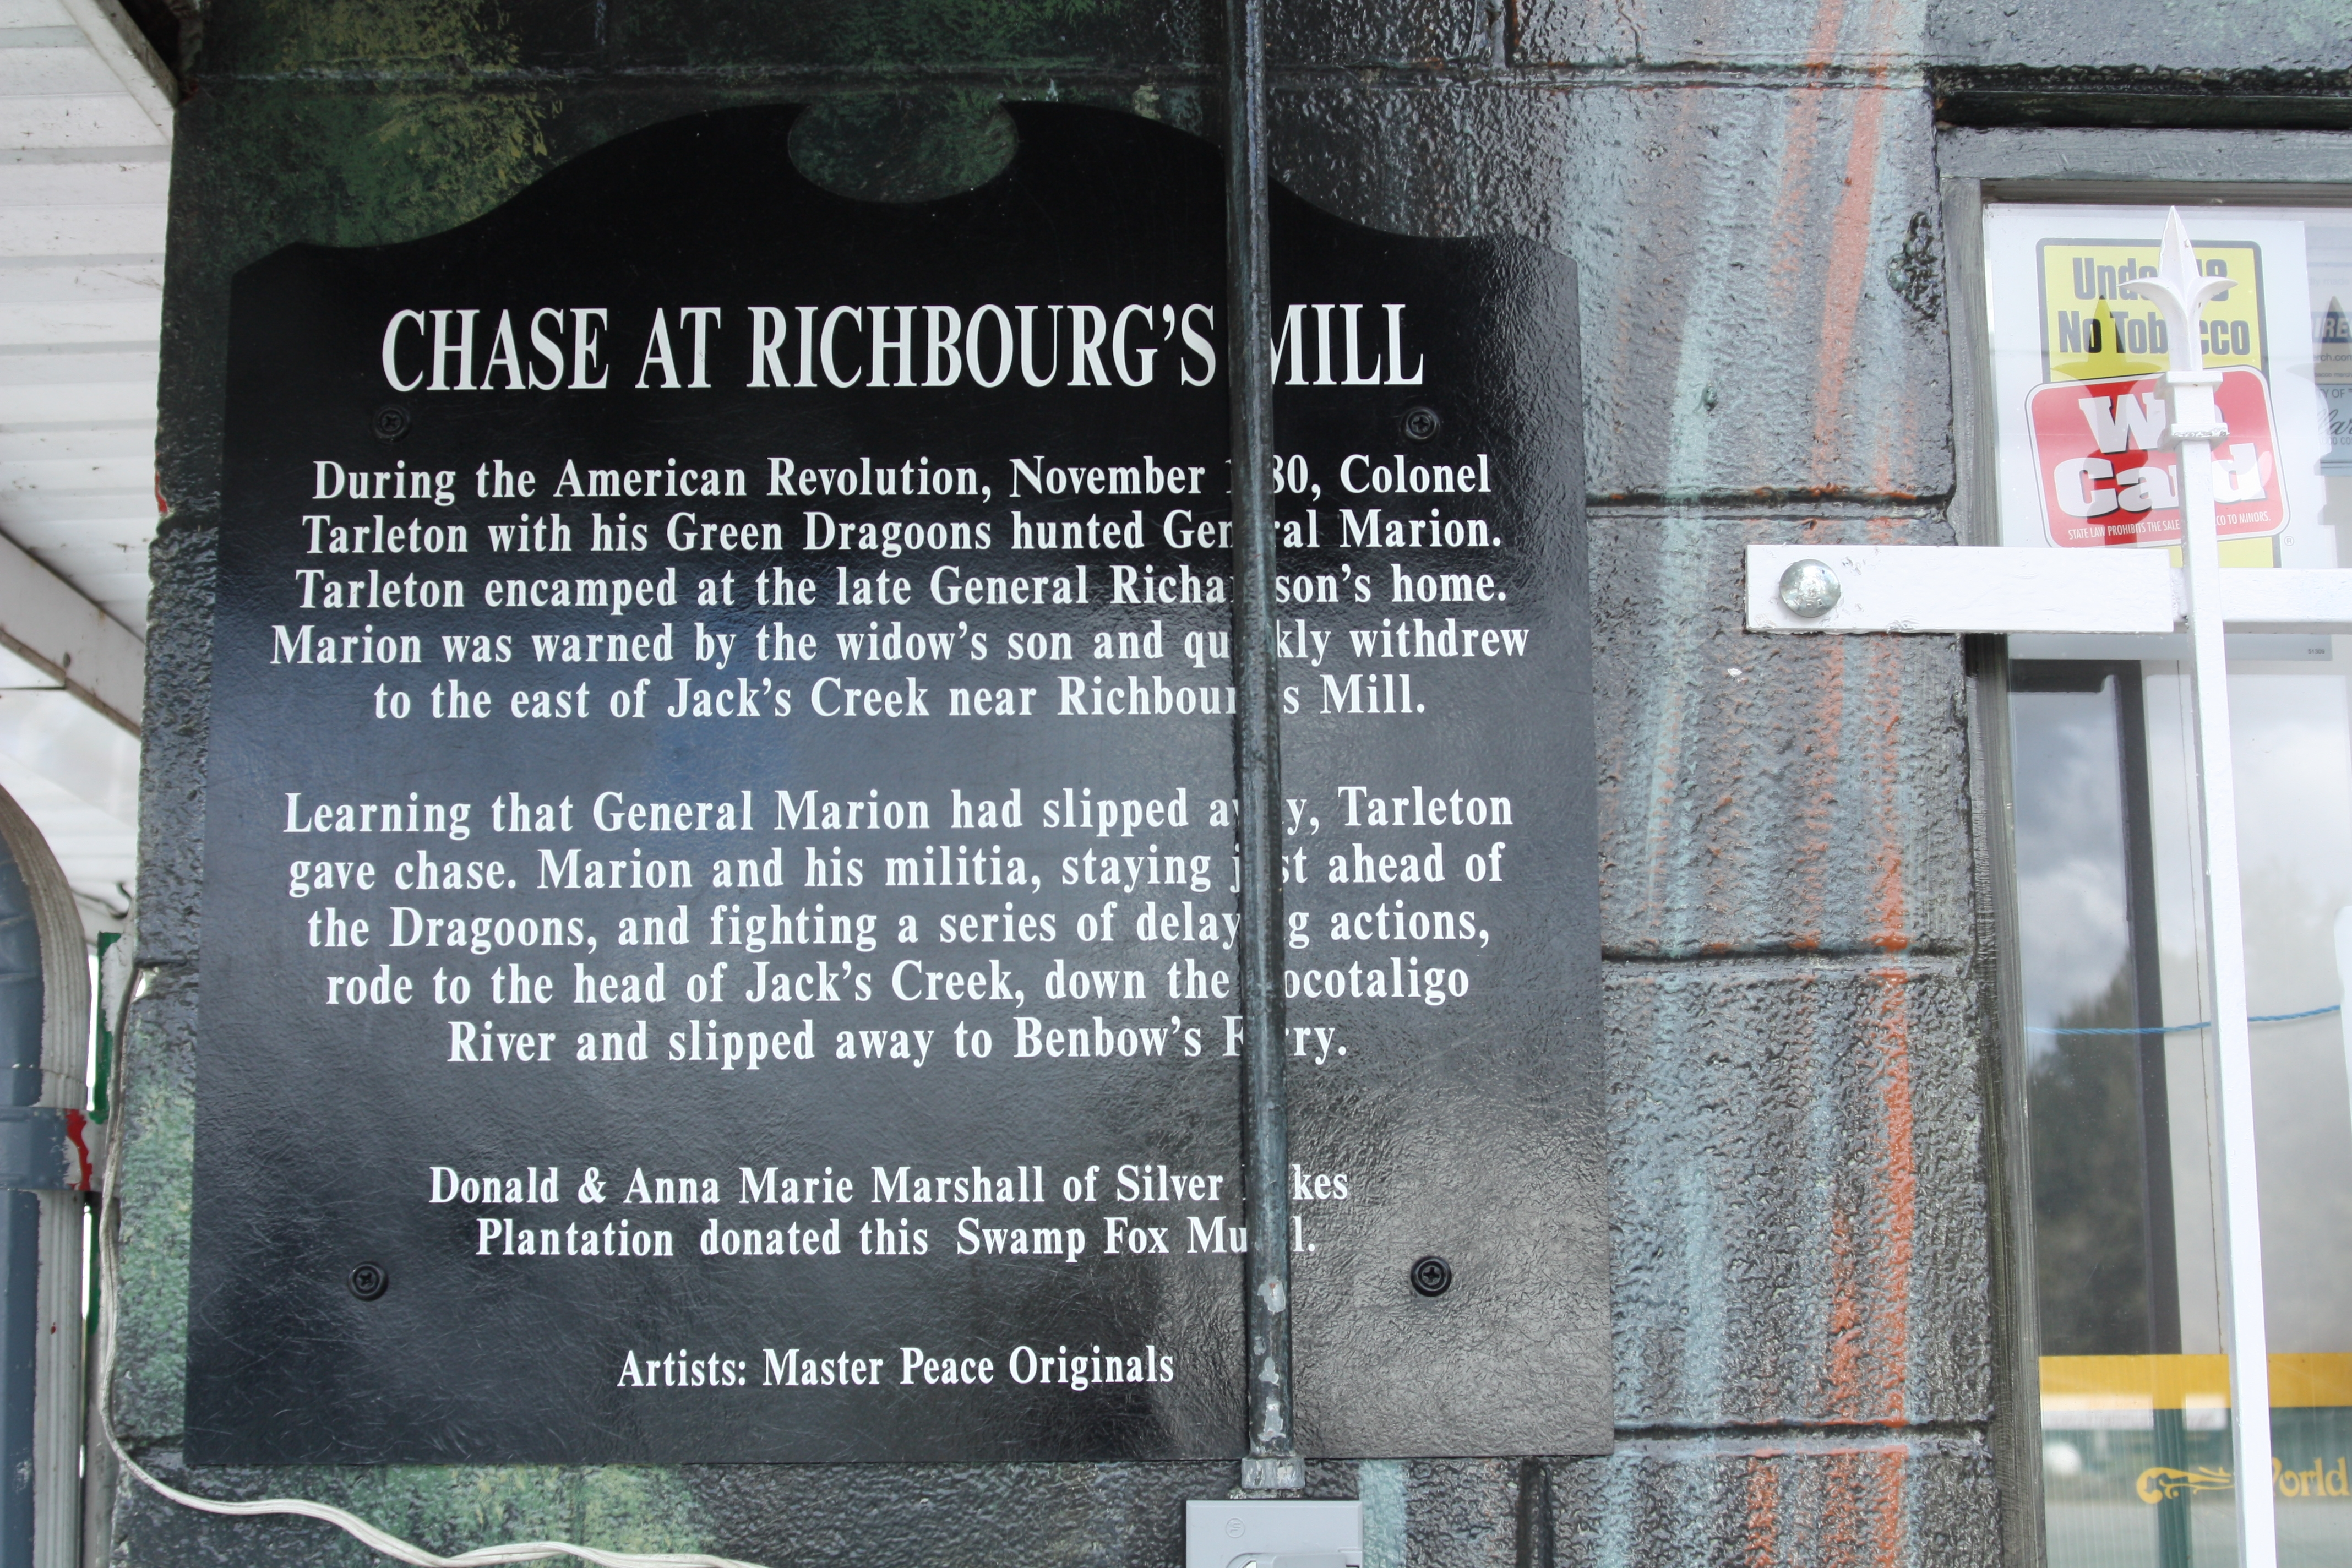 Chase At Richbourg's Mill Marker